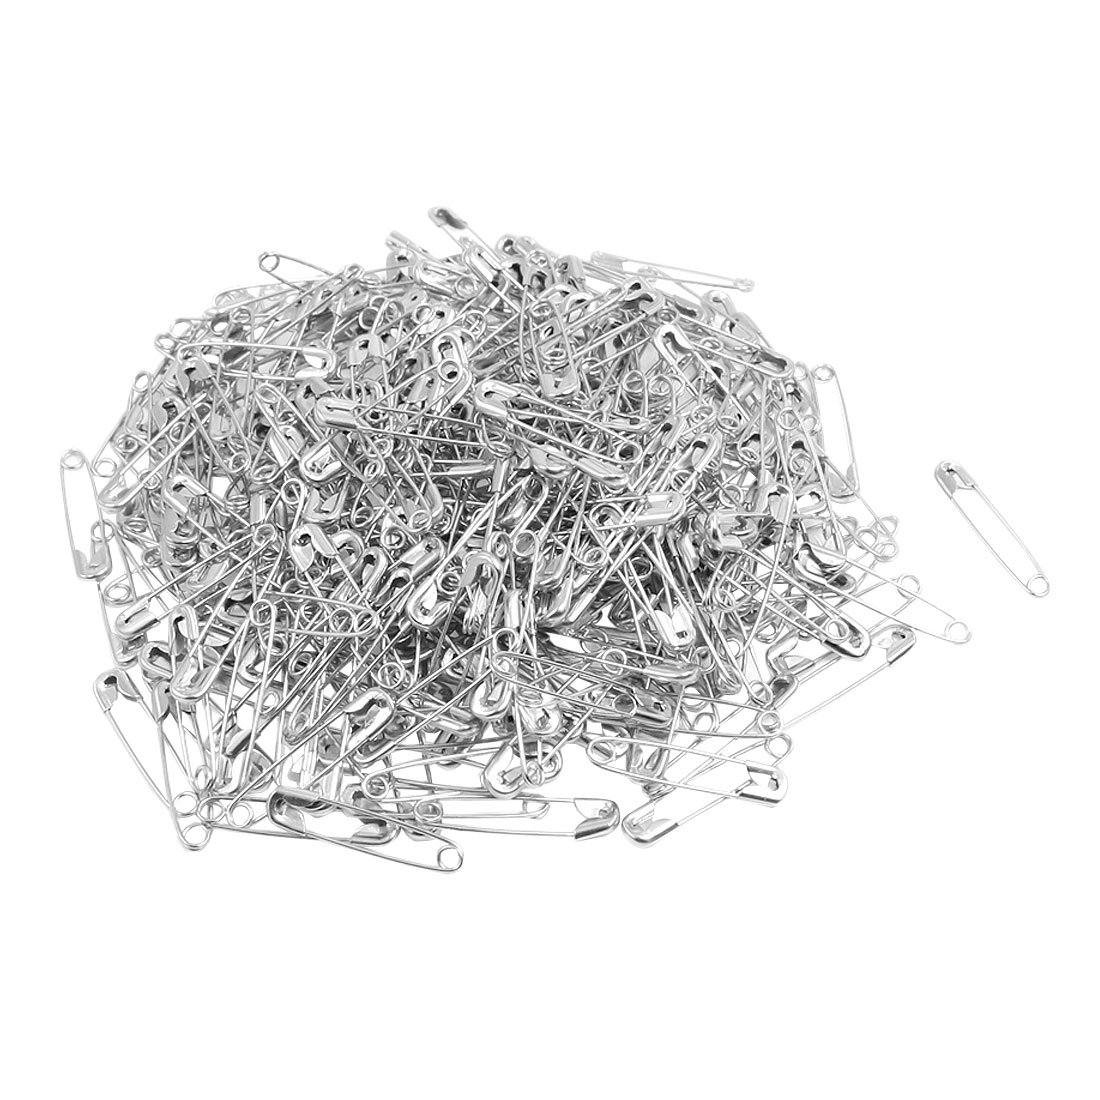 Metal Clothing Trimming Fastener Clip Button Safety Pins Silver Tone 500pcs